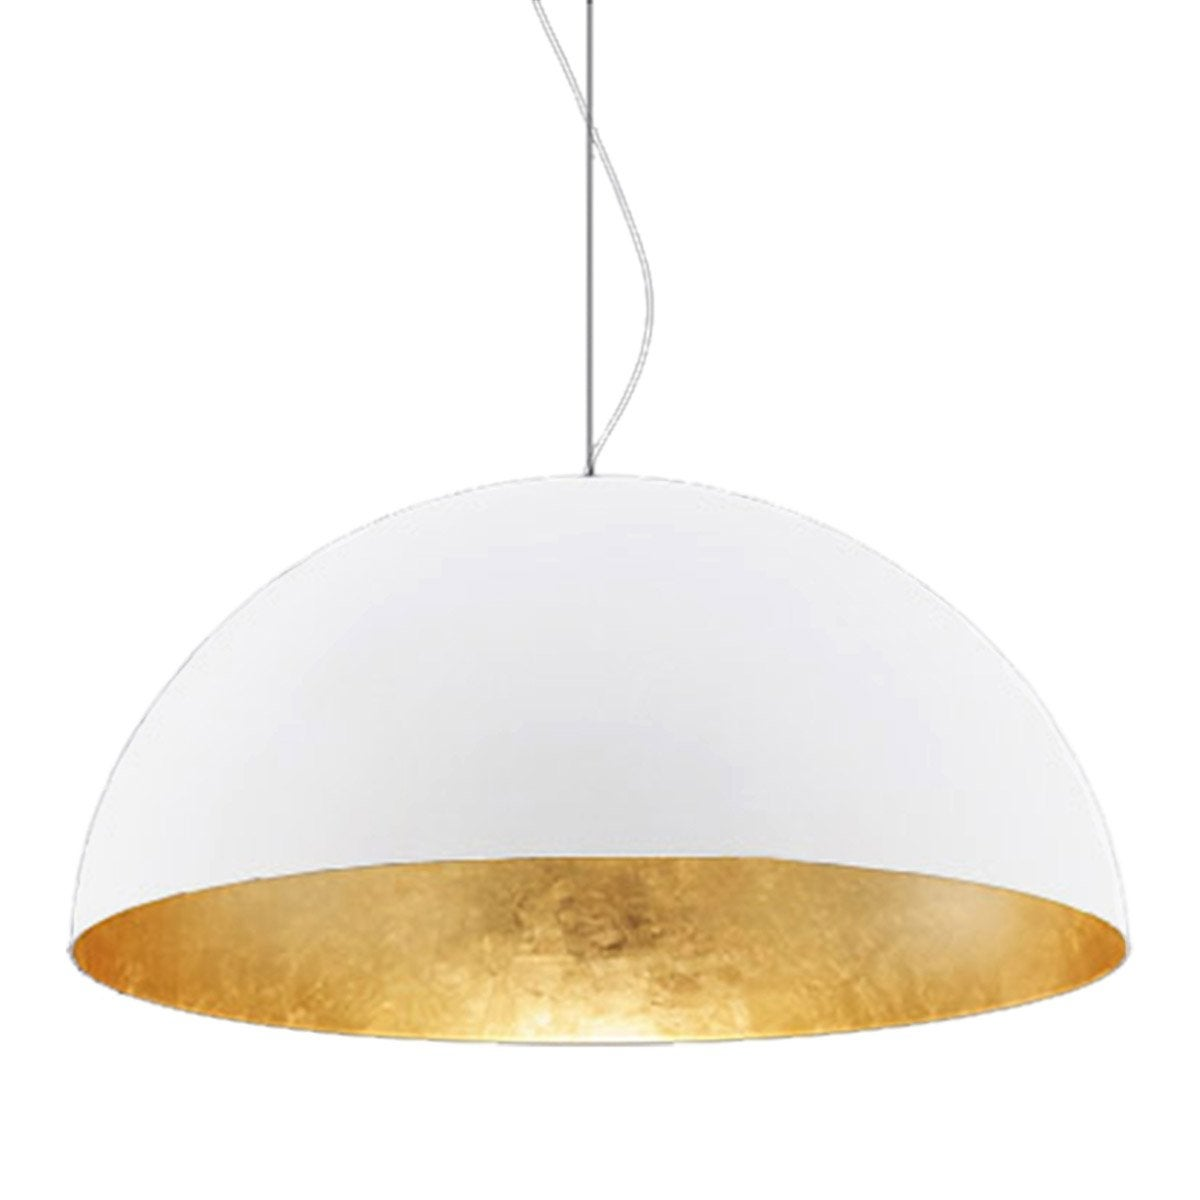 Suspension, e27 design Venice métal blanc/feuille d'or 1 x 60W W